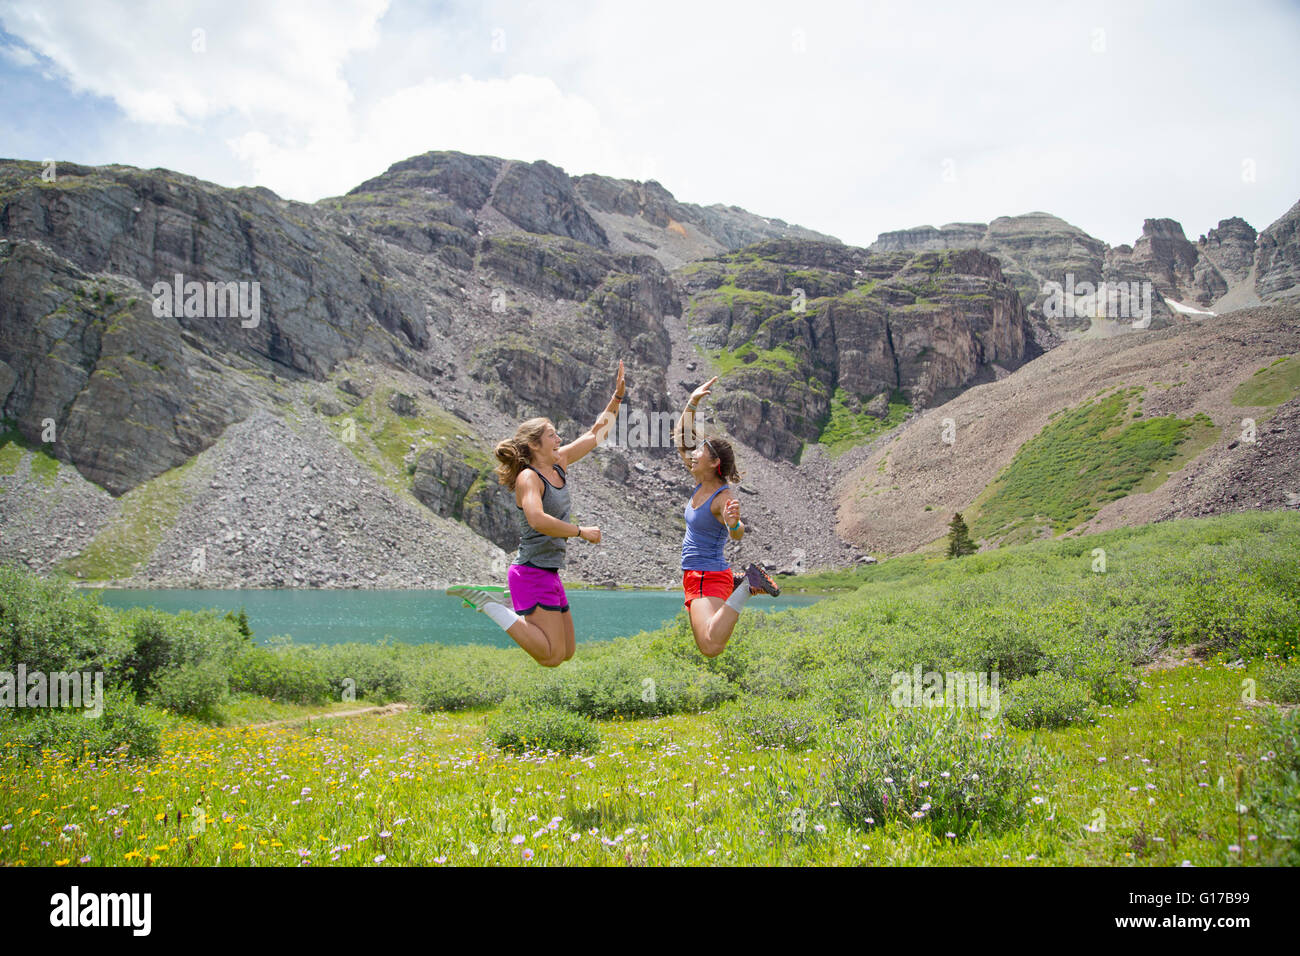 Women rejoicing in mid air, Cathedral Lake, Aspen, Colorado - Stock Image